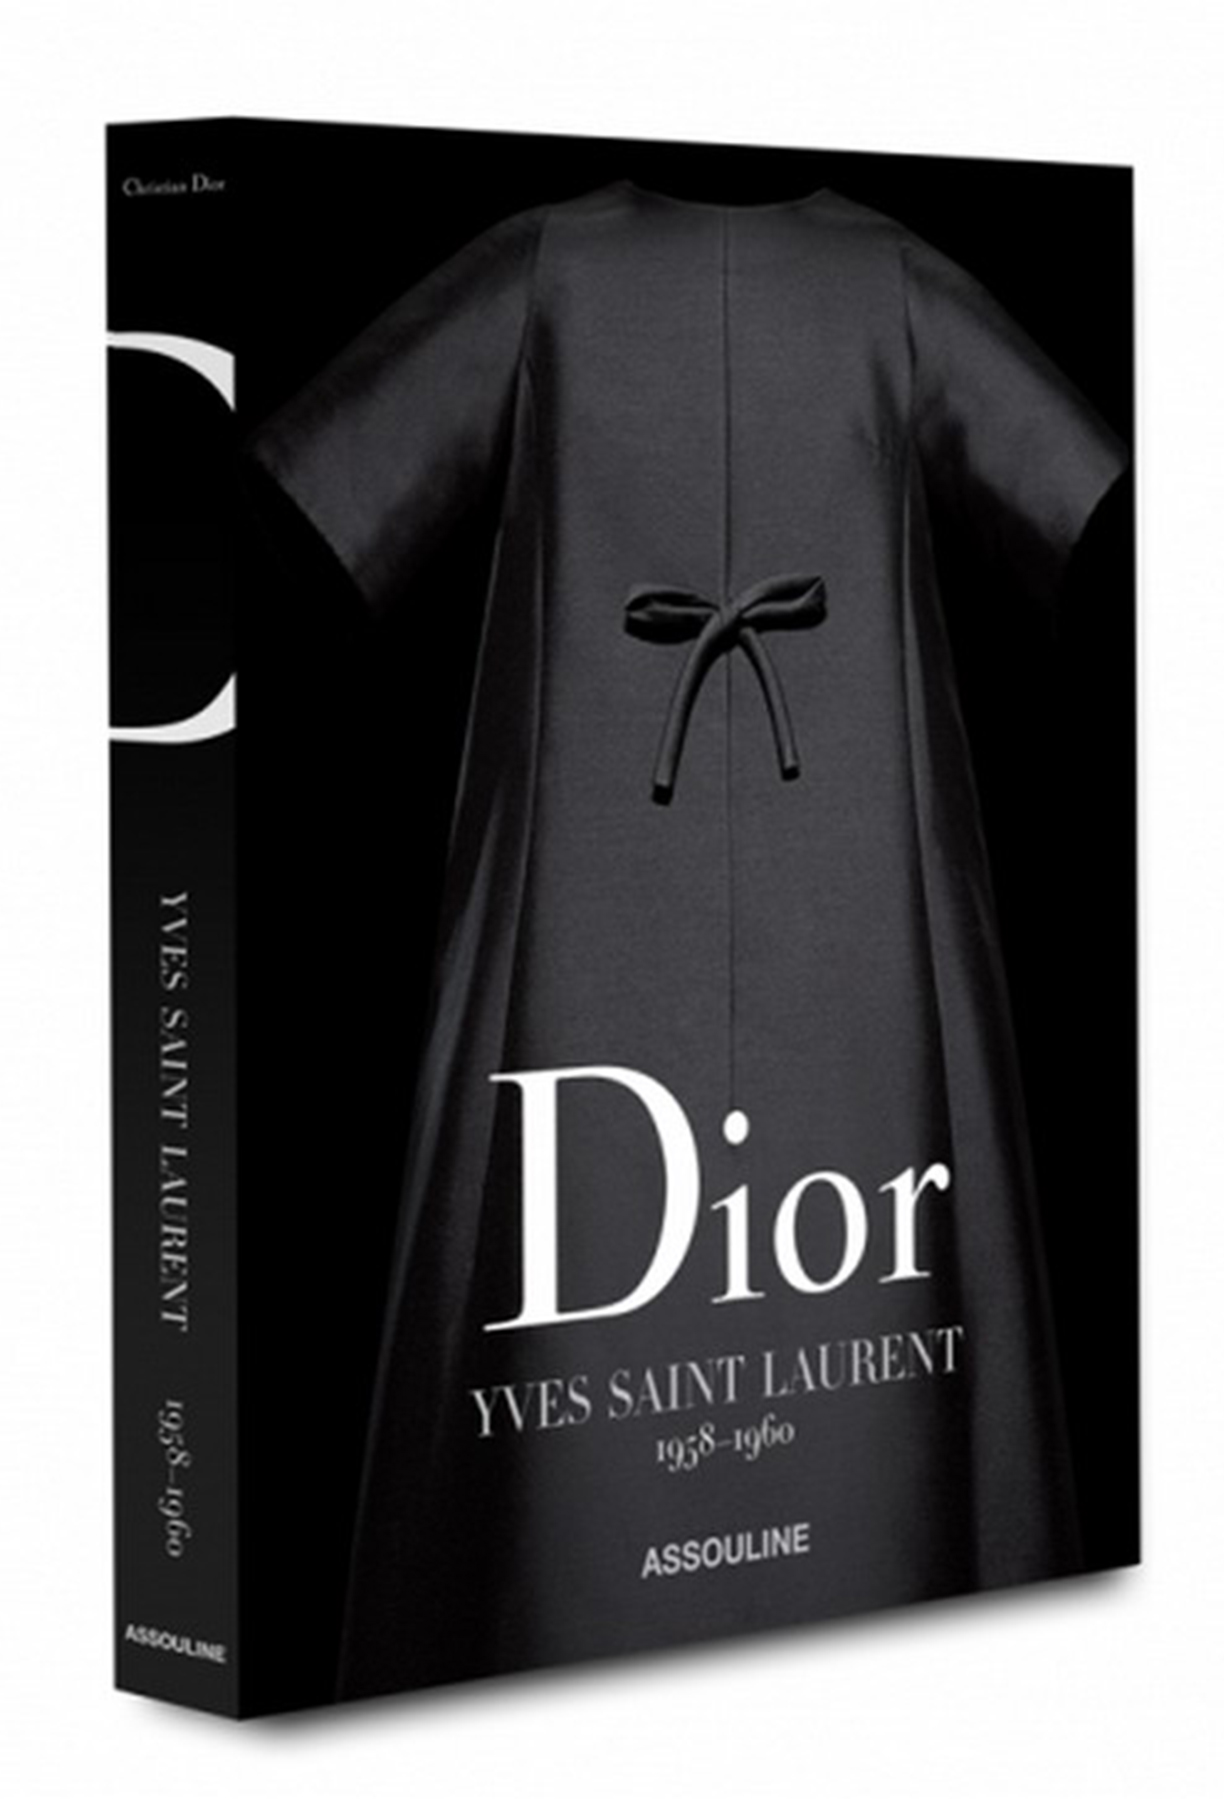 Fashion-Book-The-Glamour-of-Dior-By-Yves-Saint-Laurent-5.jpg